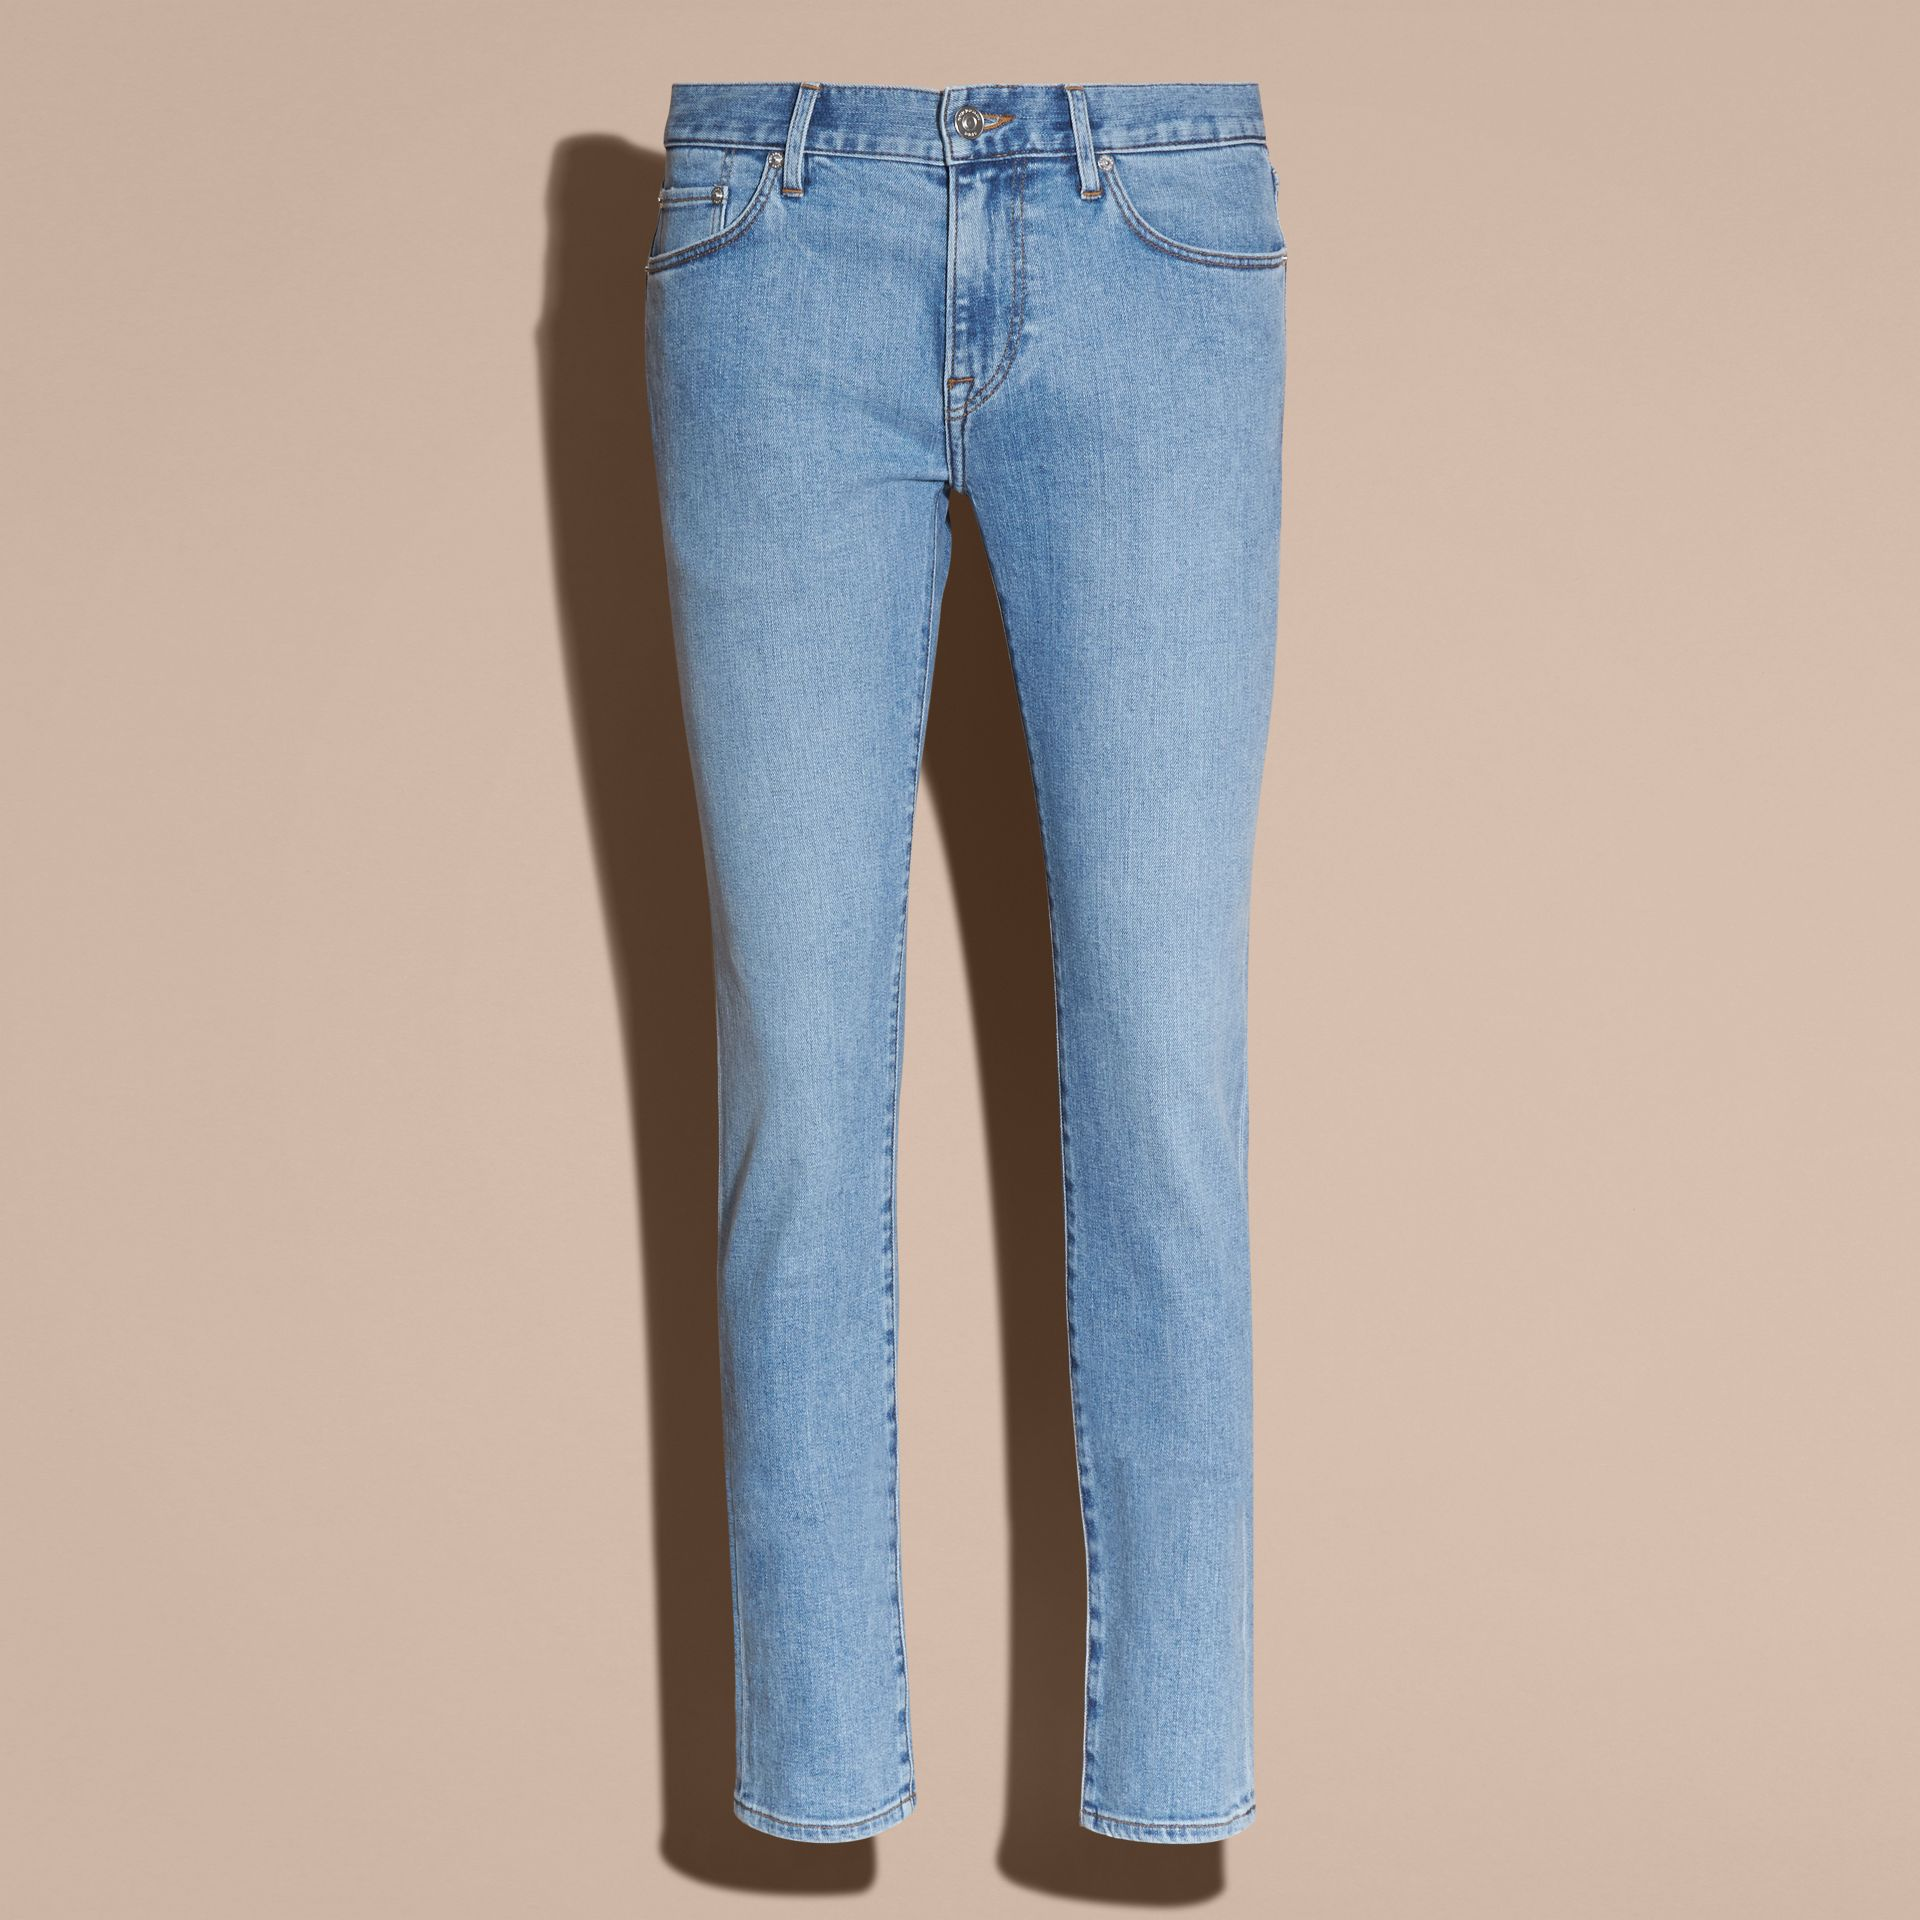 Indigo clair Jean slim stretch en denim japonais ultra-confortable - photo de la galerie 4